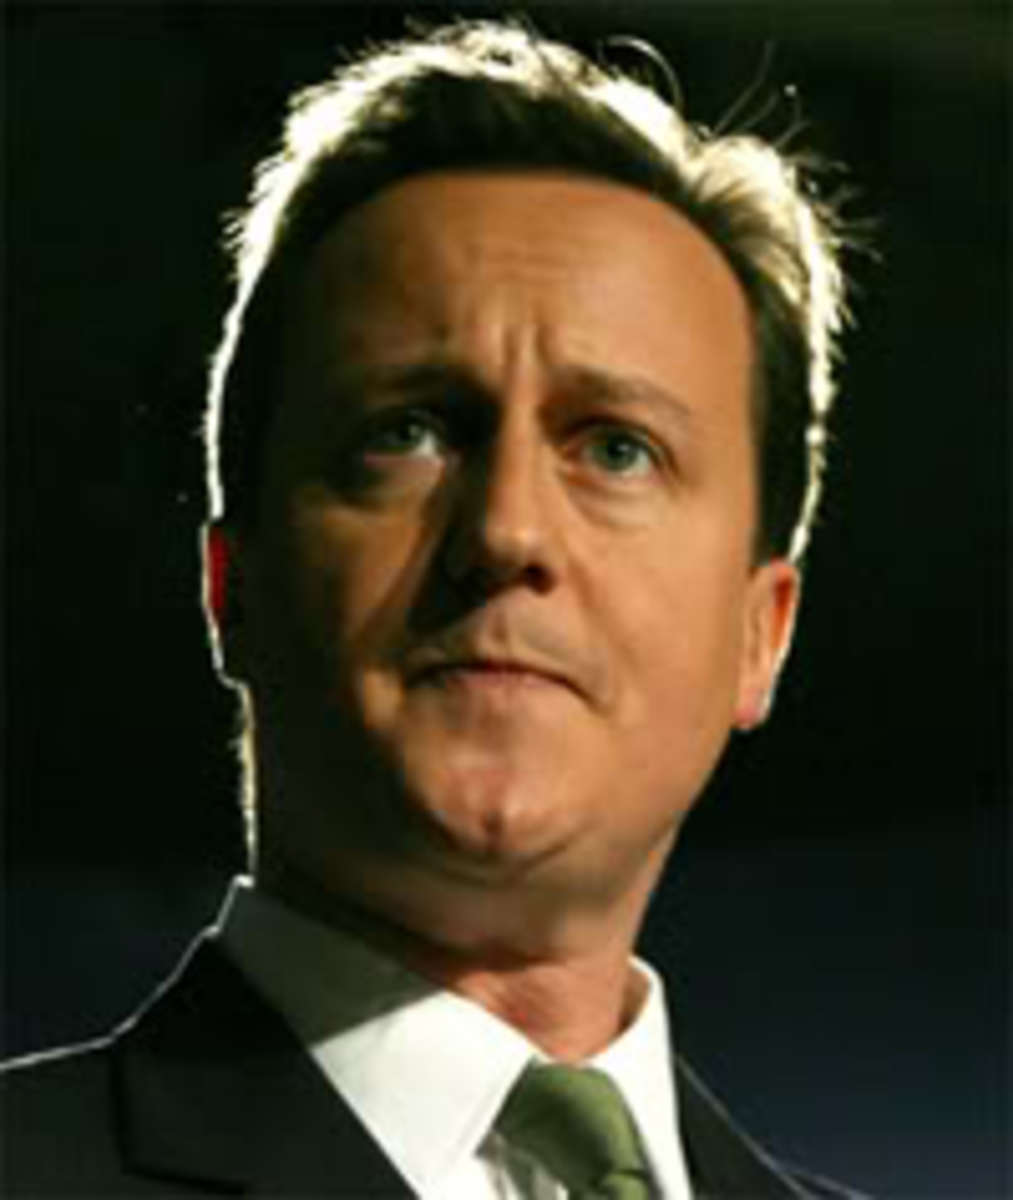 David Cameron former Prime Minister who persuaded voters to remain in the UK during the Scottish referendum.